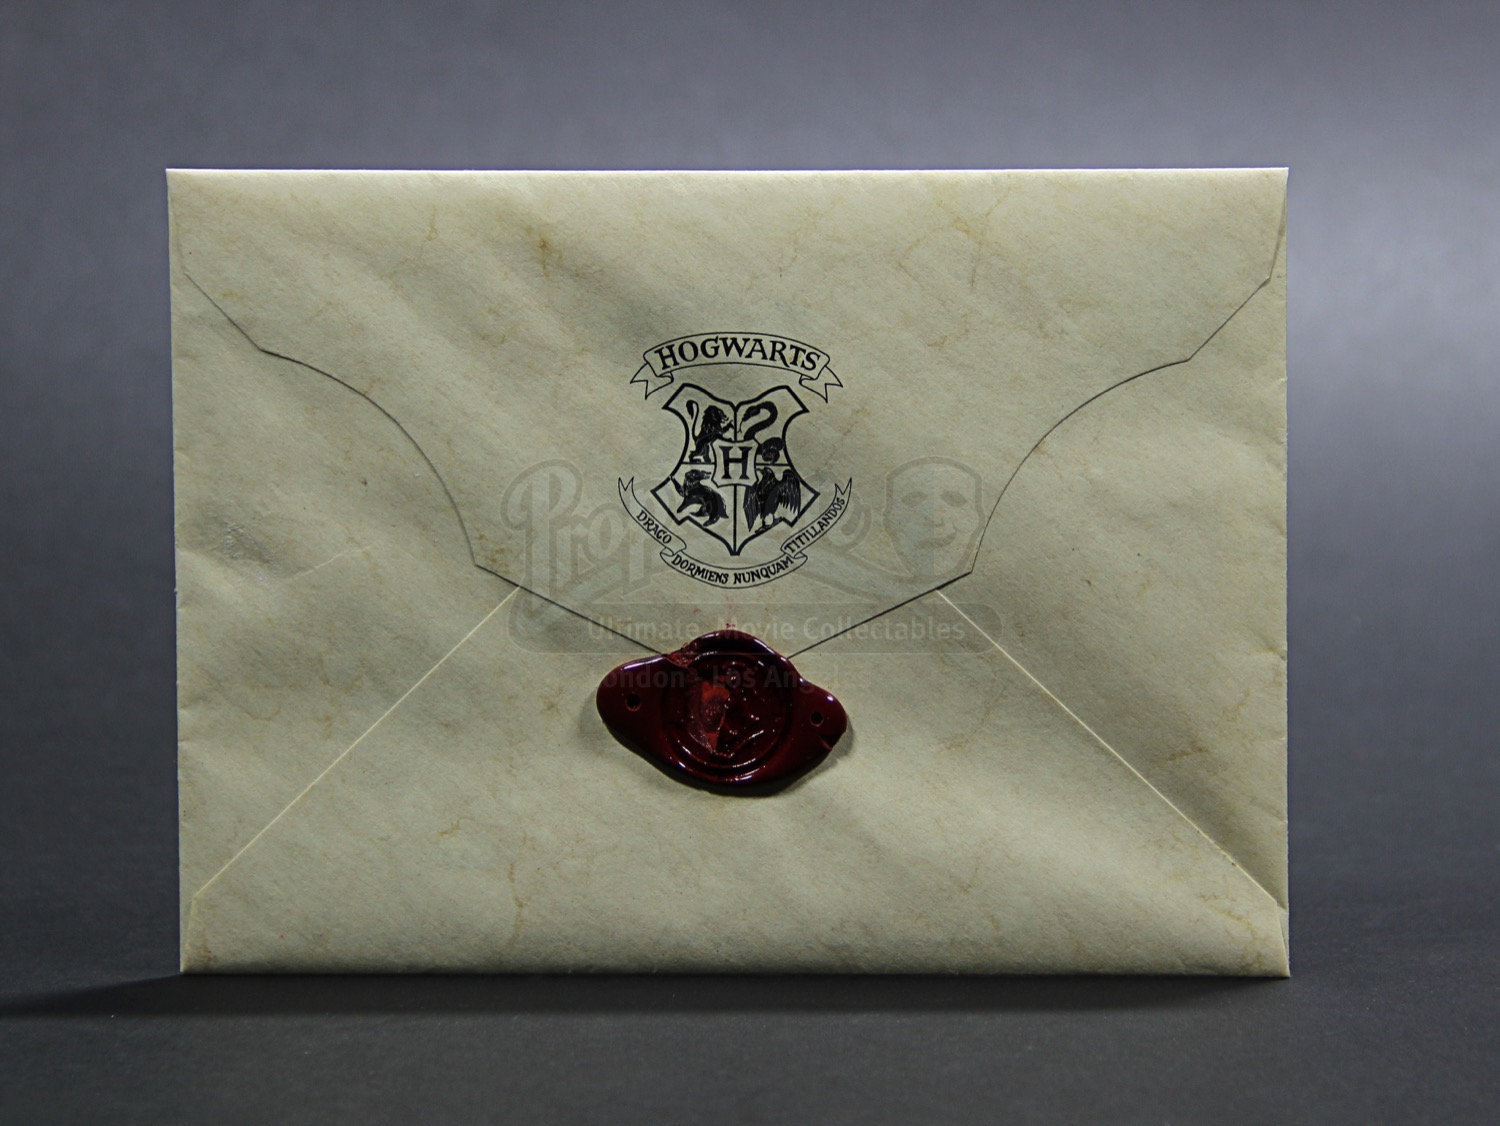 how to tell if an envelope is prepaid us